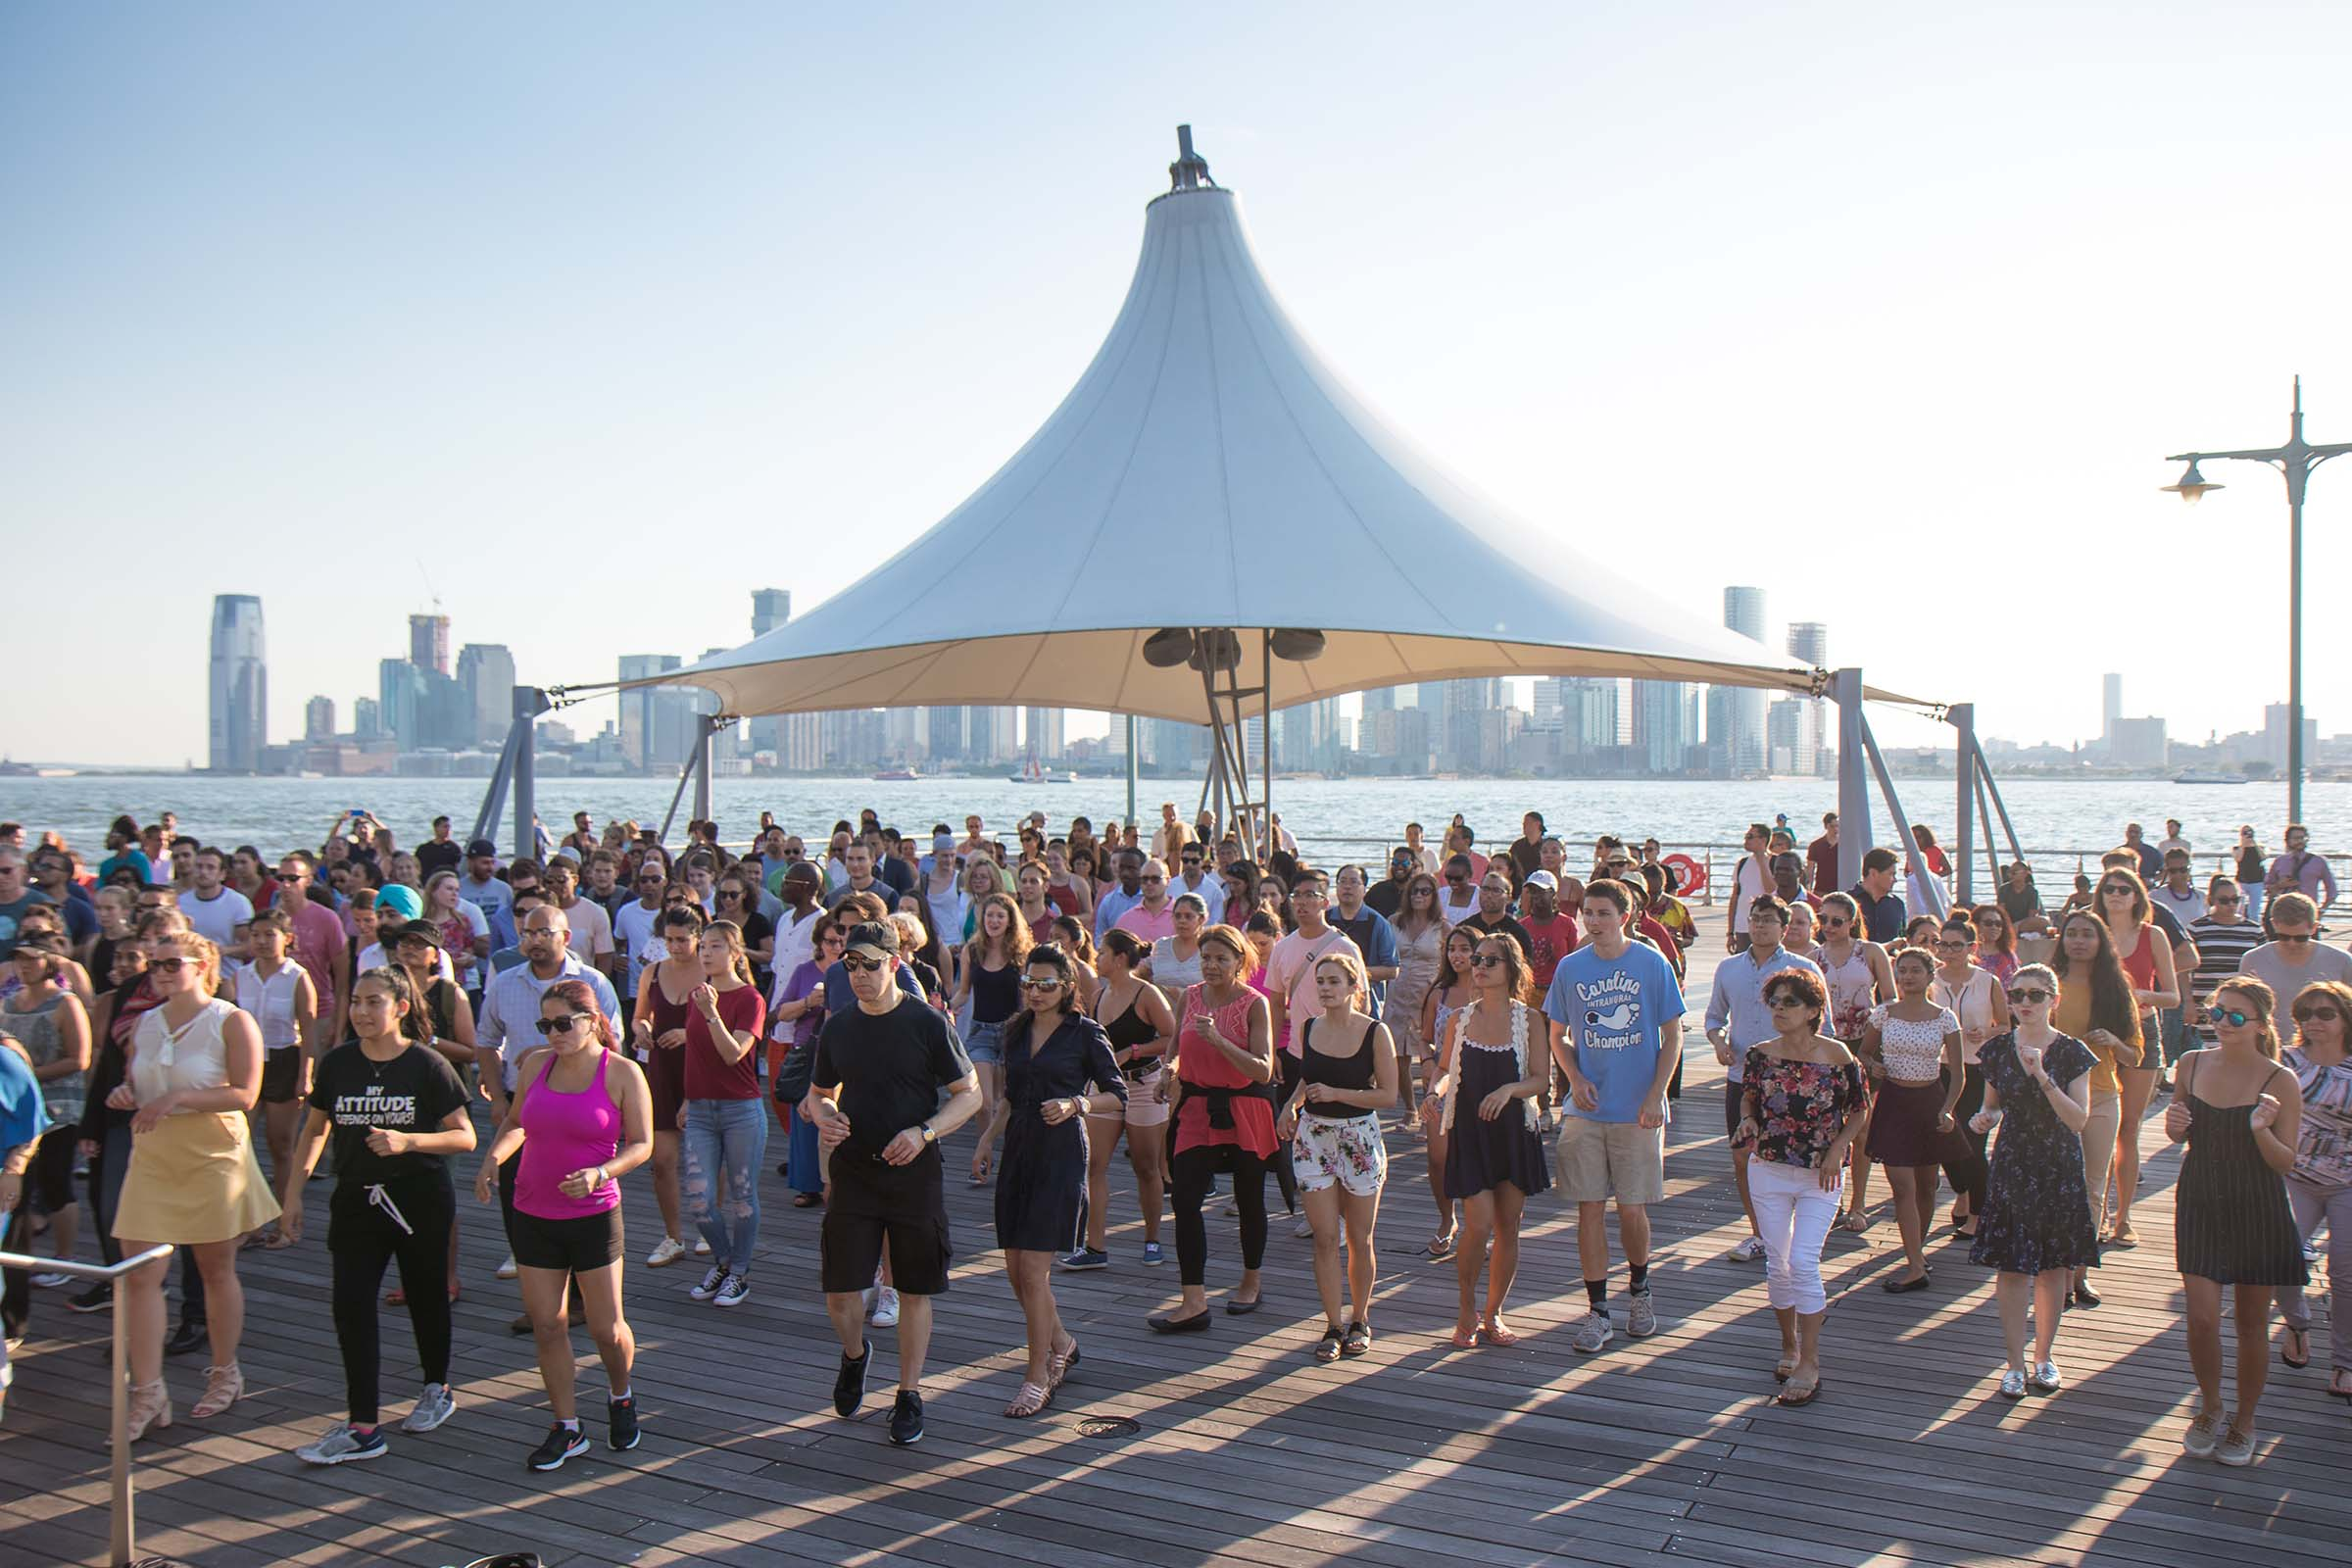 Under the canapé at Pier 45, Park visitors learn how to salsa dance